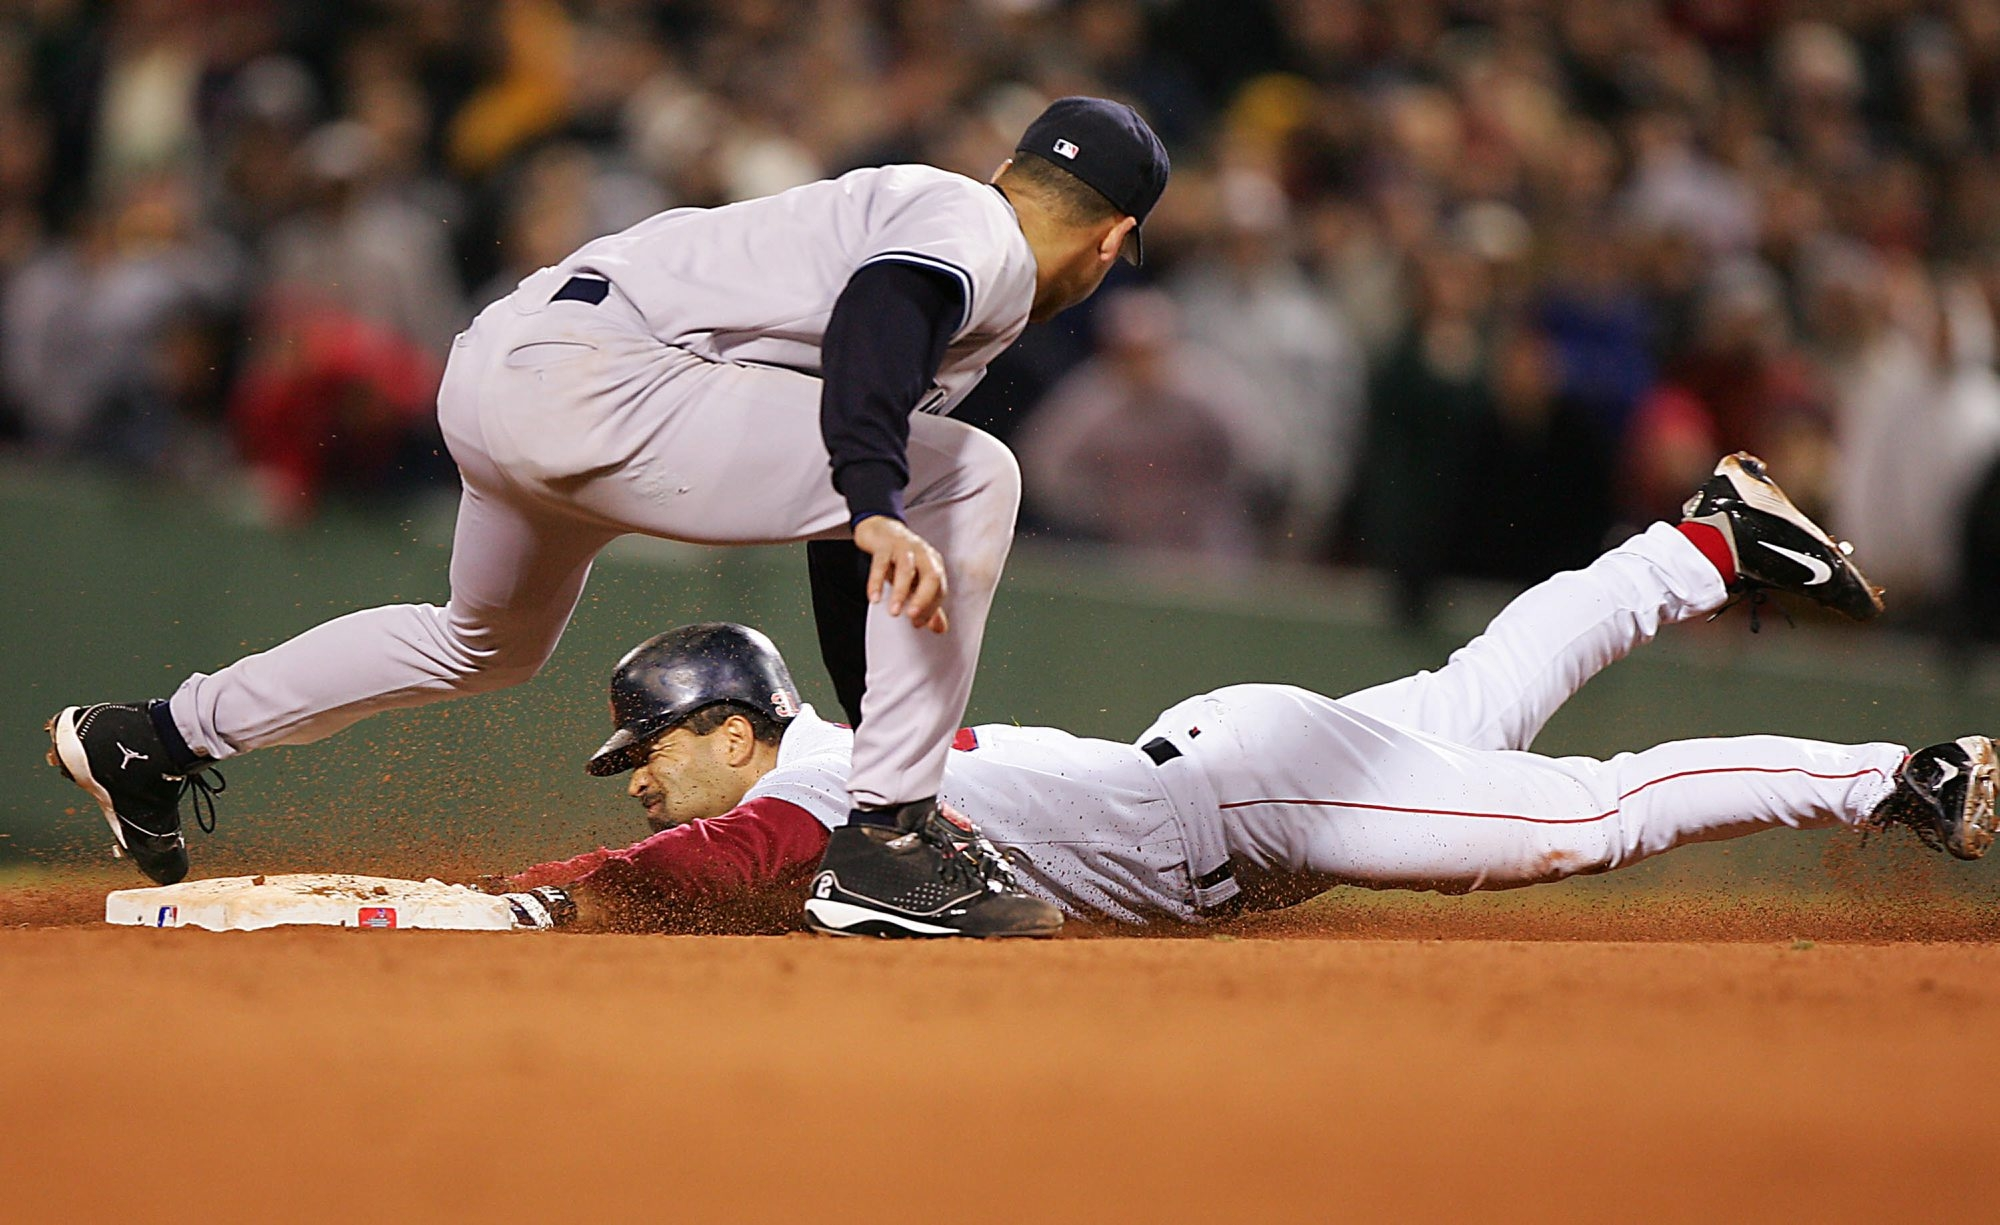 Dave Roberts steals second for the Red Sox in Game Four of the 2004 American League Championship Series.   Derek Jeter #2 of the New York Yankees applies the tag in the ninth inning during game four of the American League Championship Series on October 17, 2004 at Fenway Park in Boston, Massachusetts.  (Photo by Jed Jacobsohn/Getty Images)